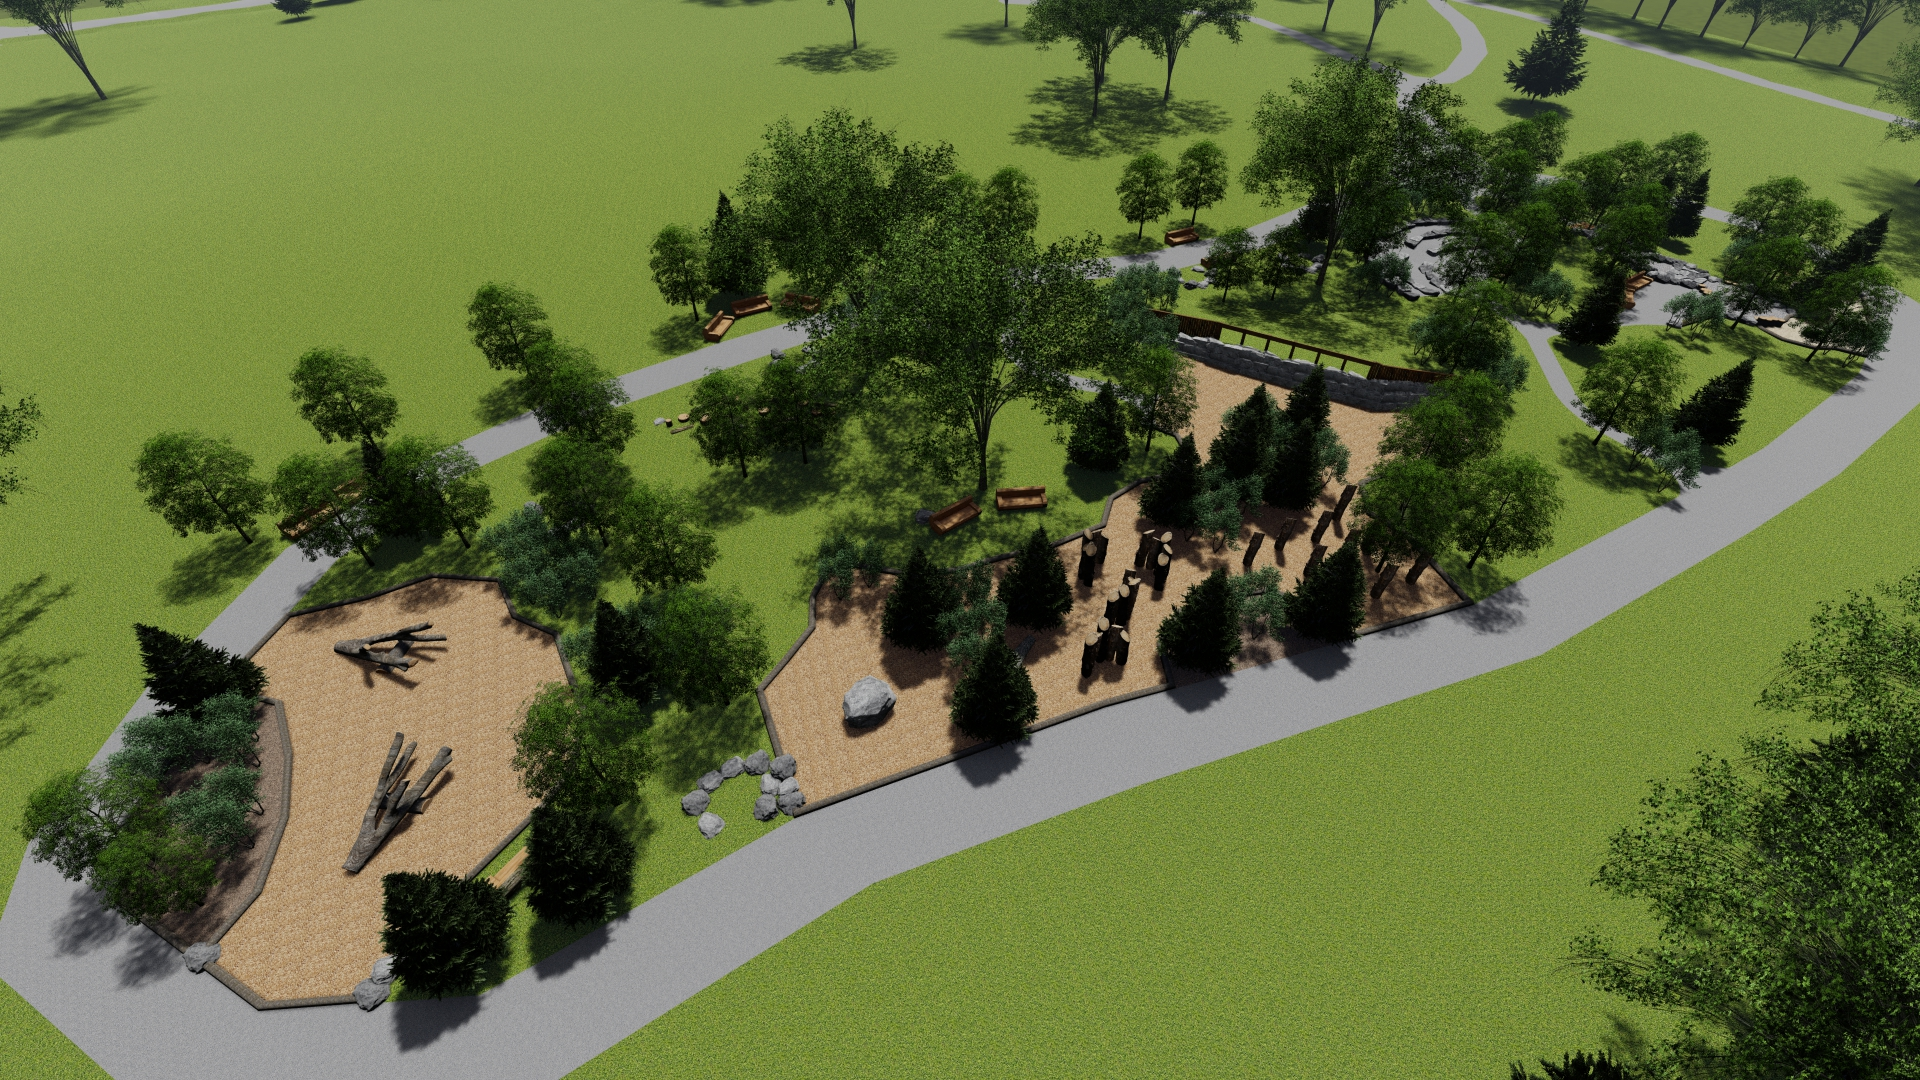 Rendering of an environmental playground at Island Lake Conservation Area